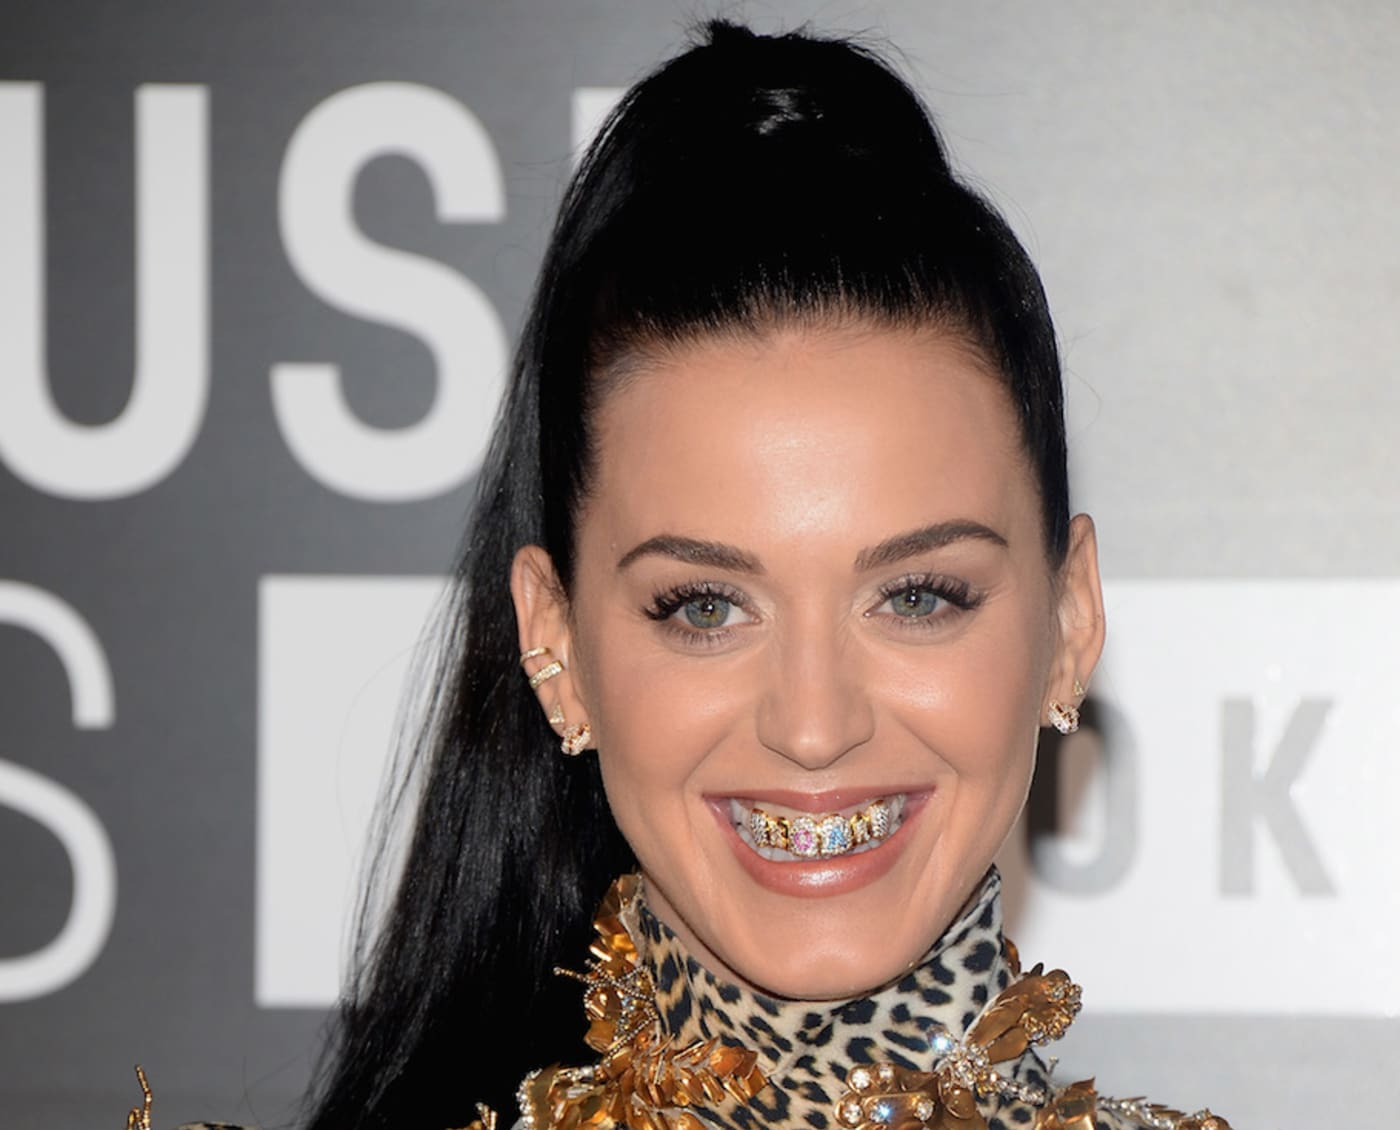 Katy Perry Grills